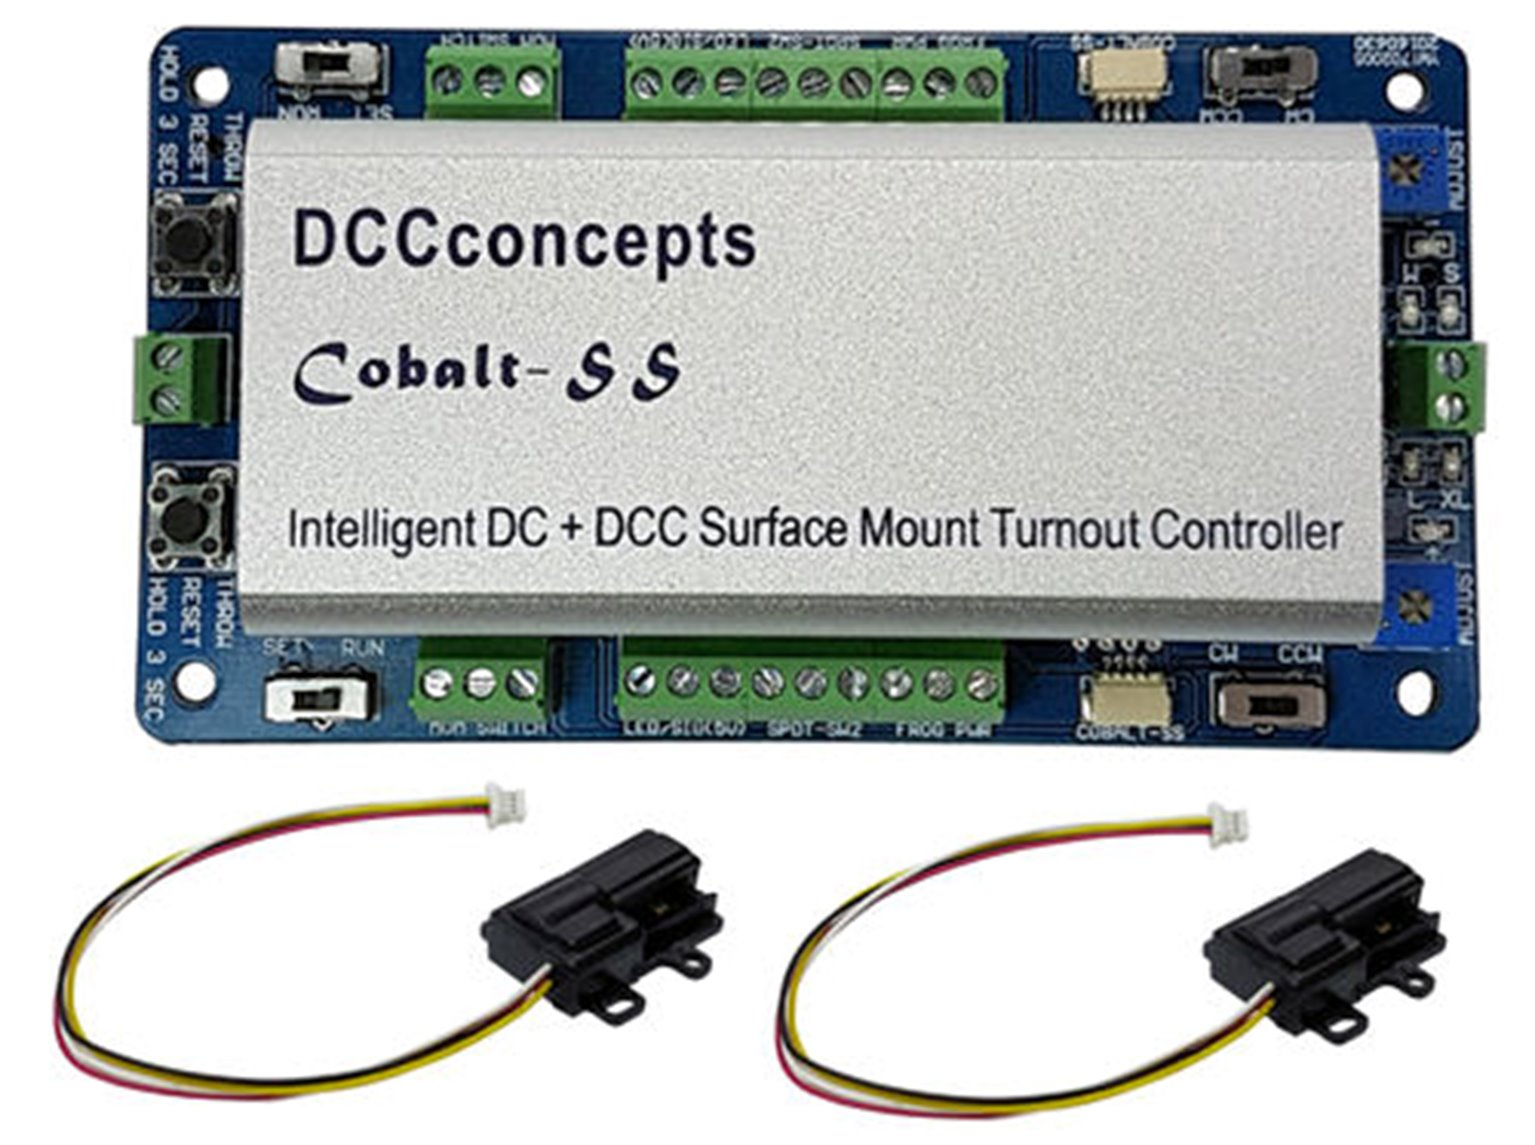 Cobalt SS Surface Mount Point Motor with Controller and Accessories (2 Pack)